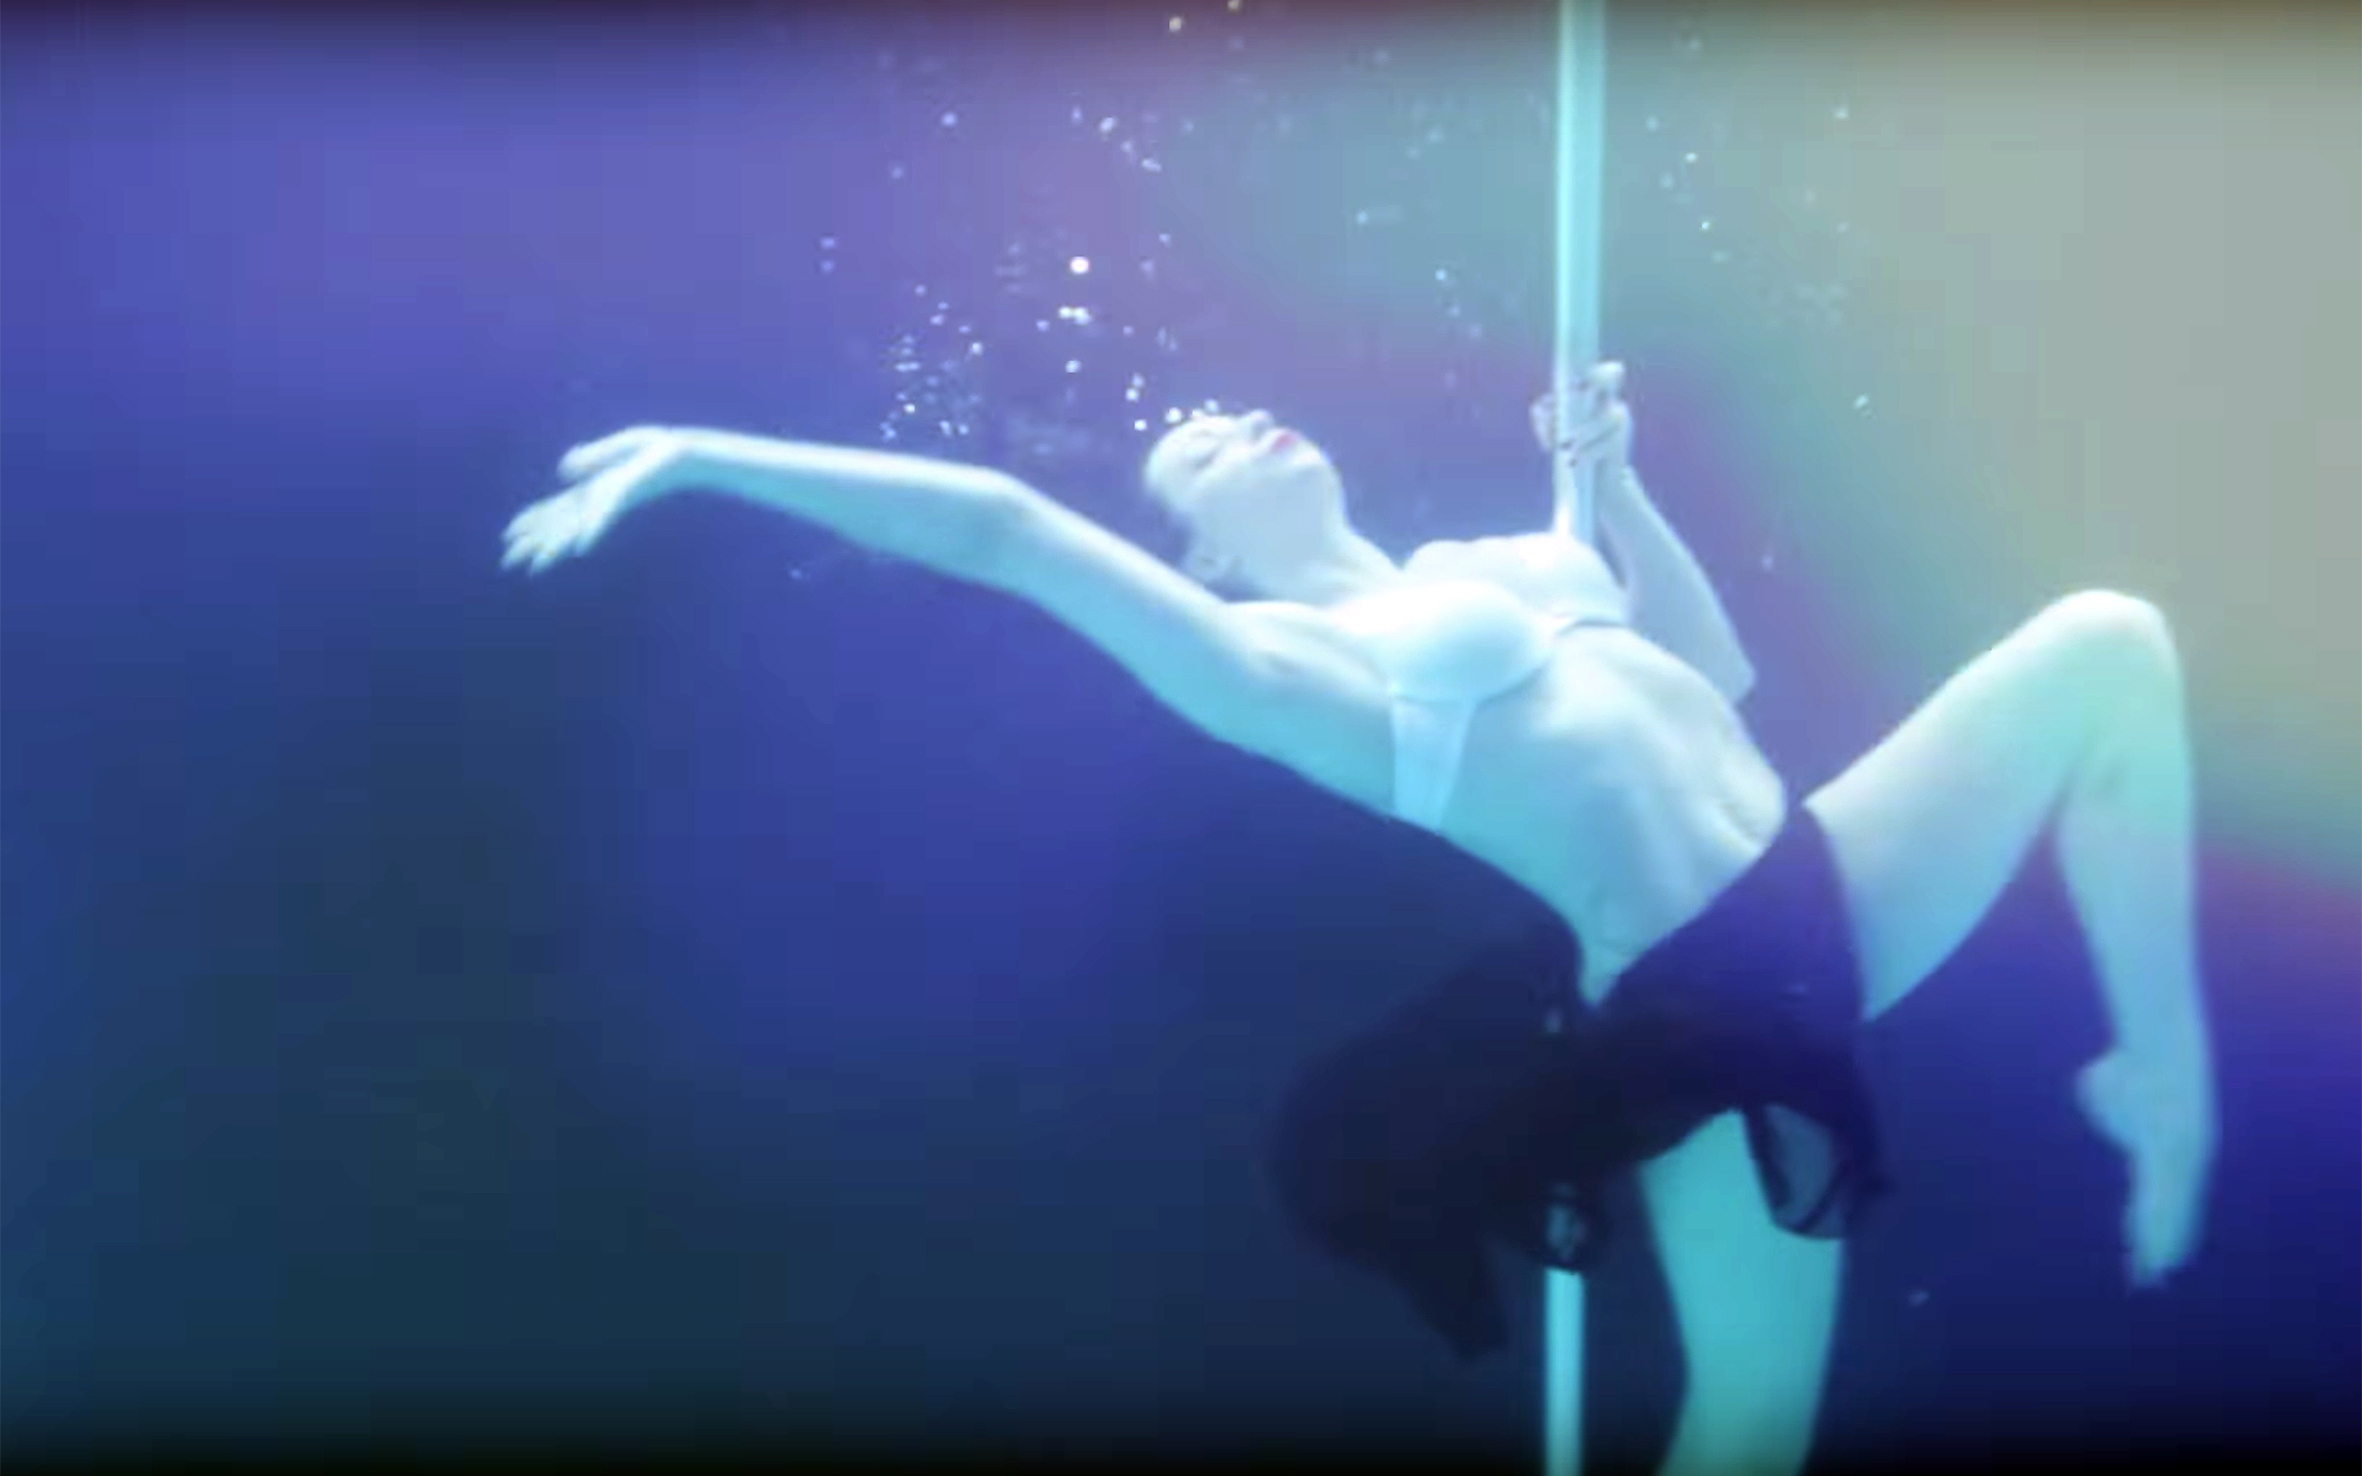 35. AQUABATIC / Global - AQUABATIC is a type of dance related to gymnastic feats performed in water. Pole dancers show off their Aquabatic skills as they run through their routines underwater.